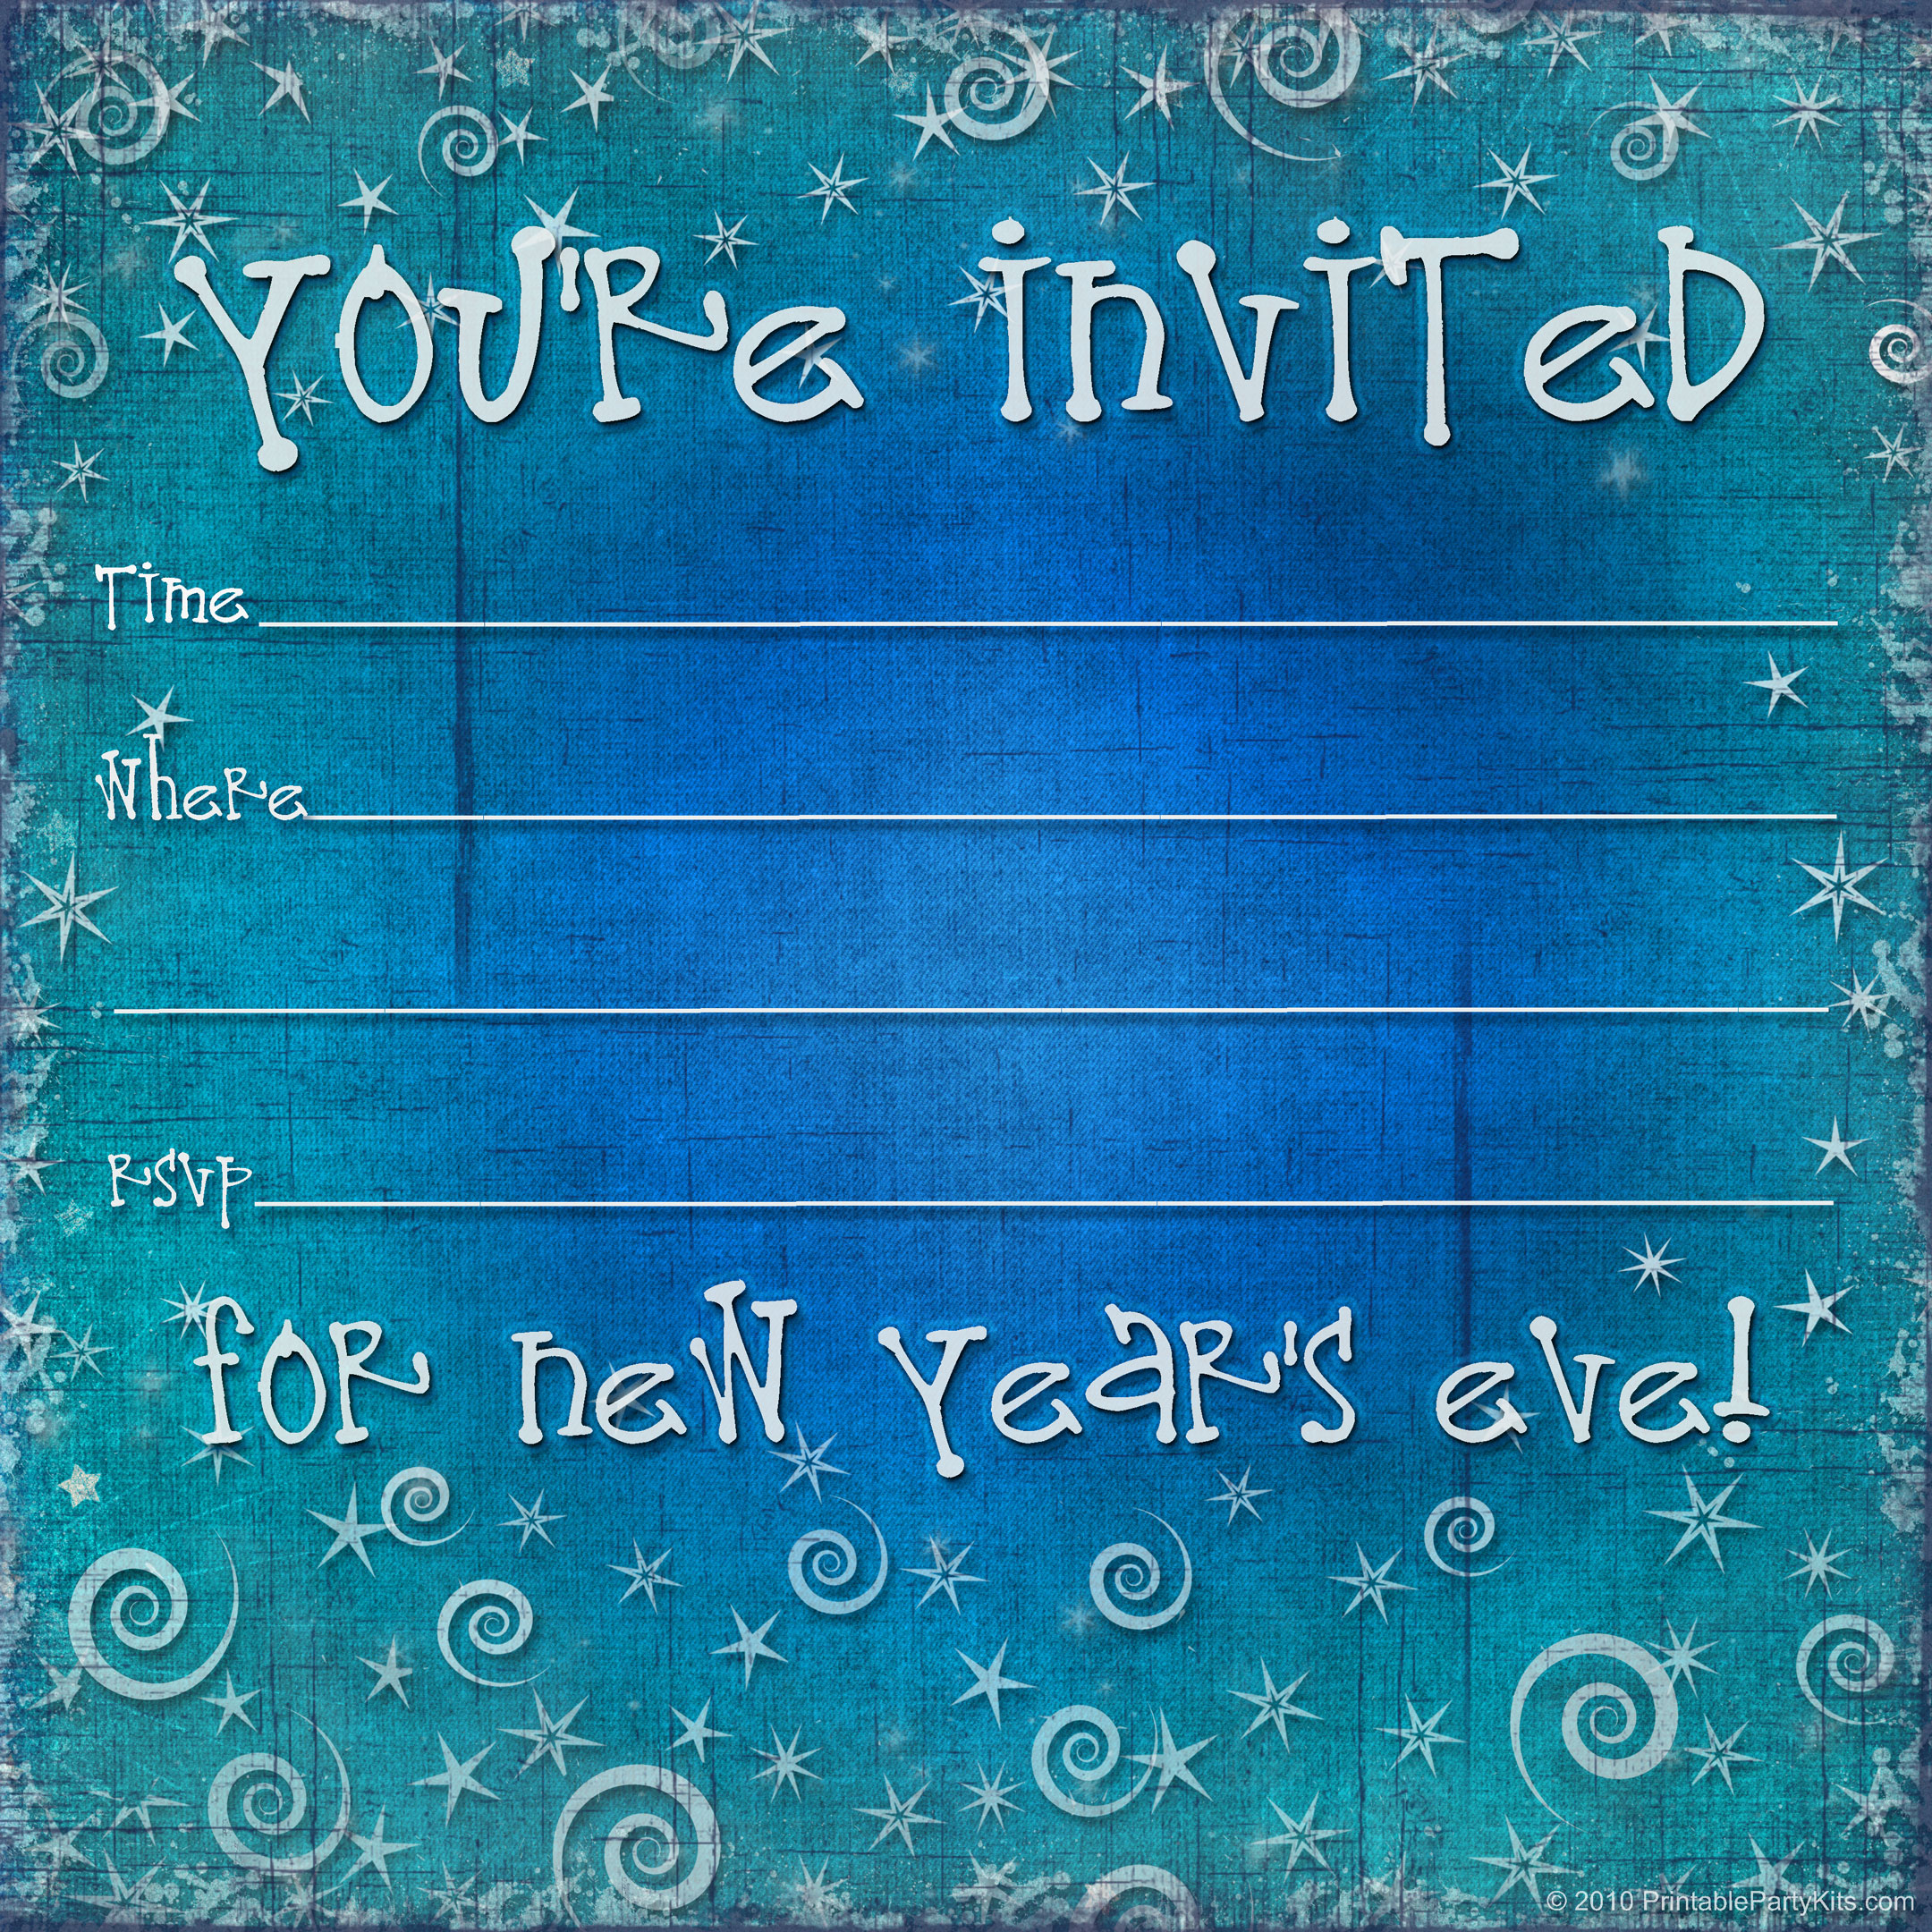 Free printable new years eve party invitation template for New year invite templates free